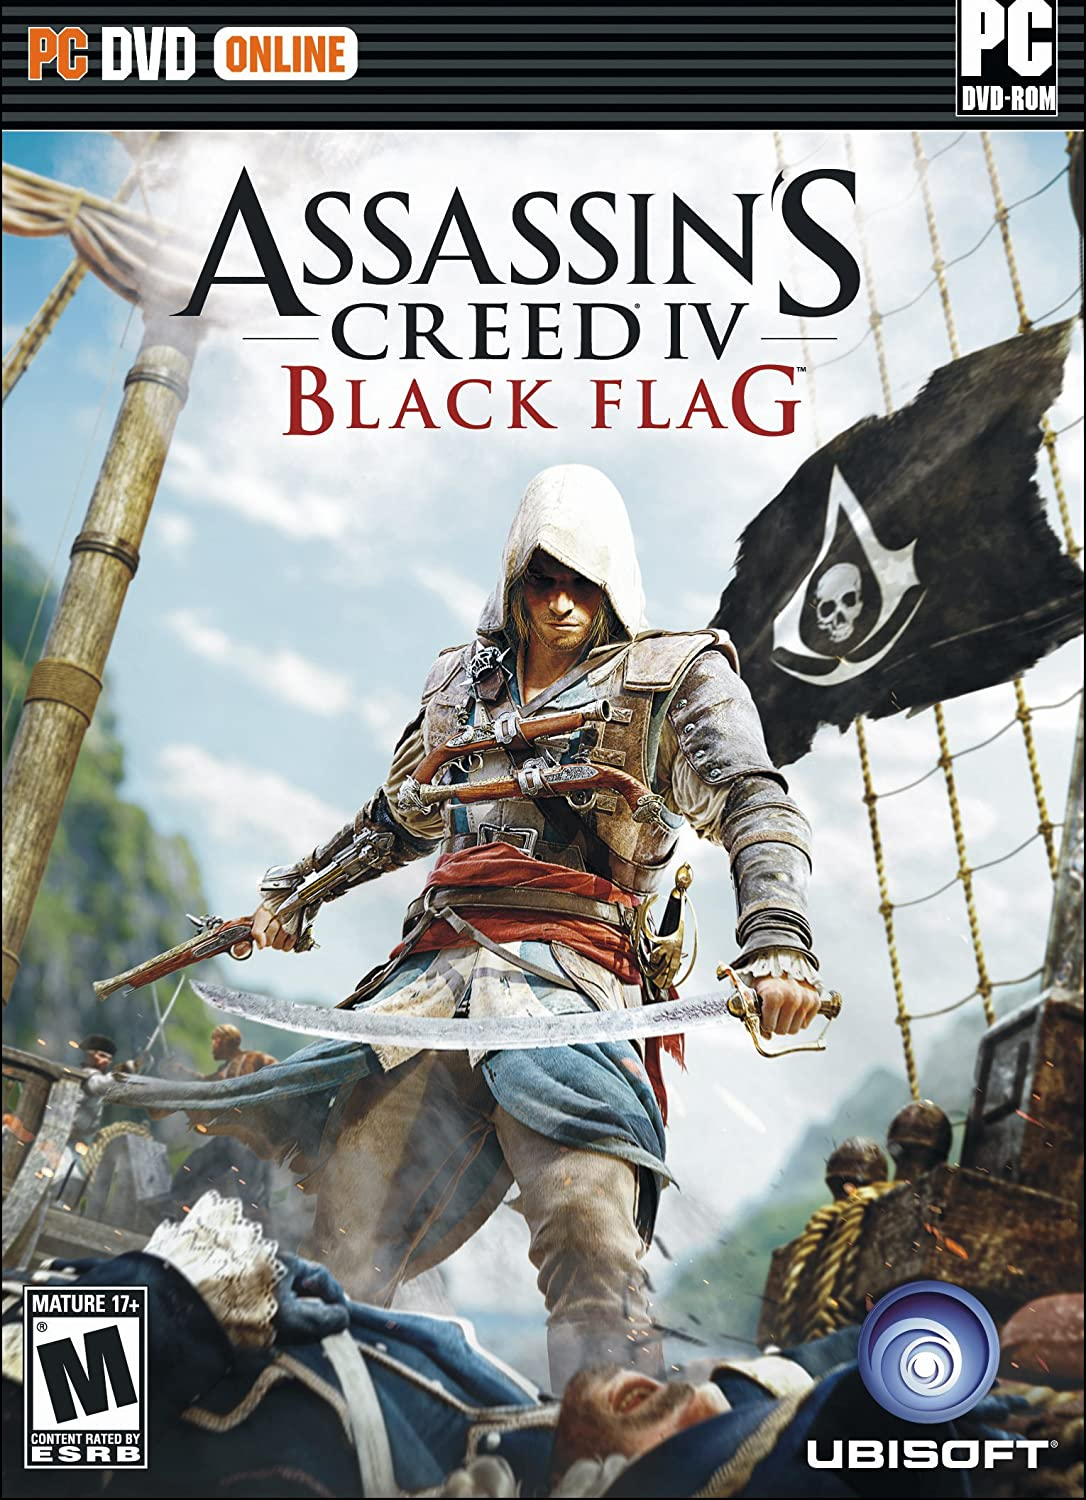 Assassins creed games free online - Assassin S Creed Black Flag Free Download Pc